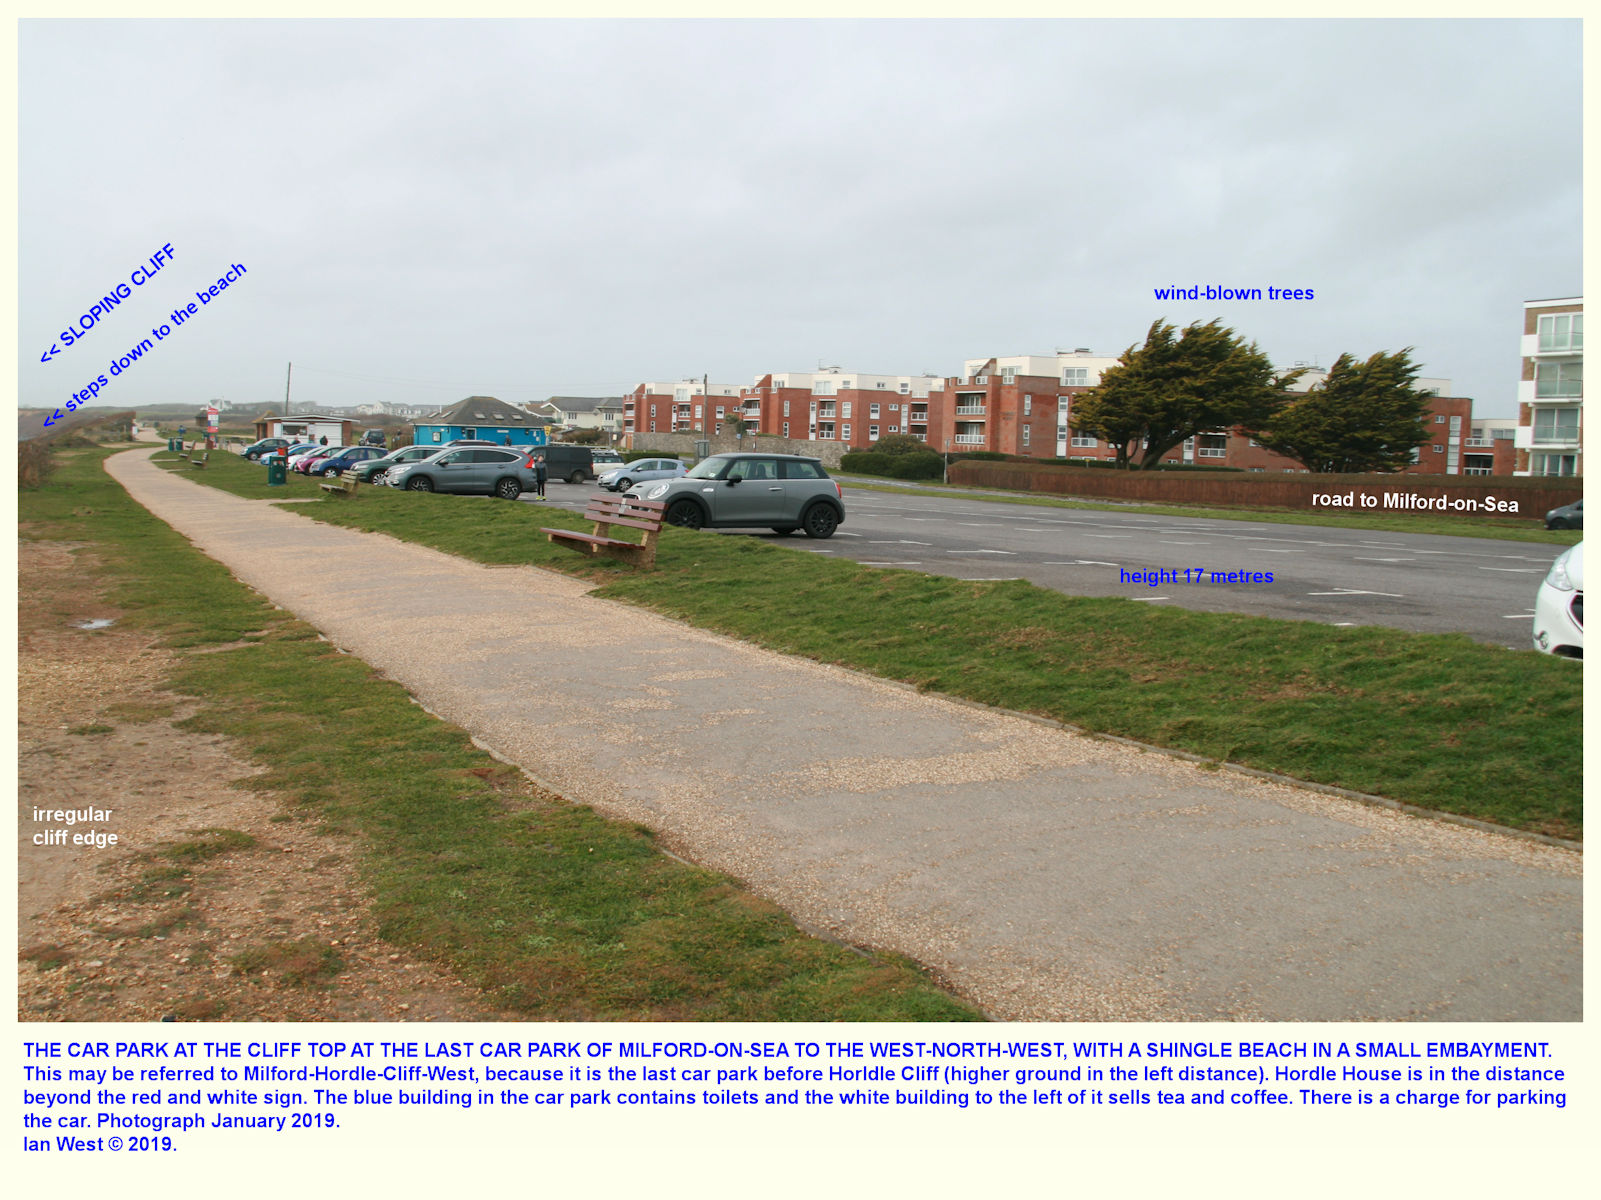 This western car park of Milford-on-Sea is above a shingle beach and a rather degraded cliff, with beach huts